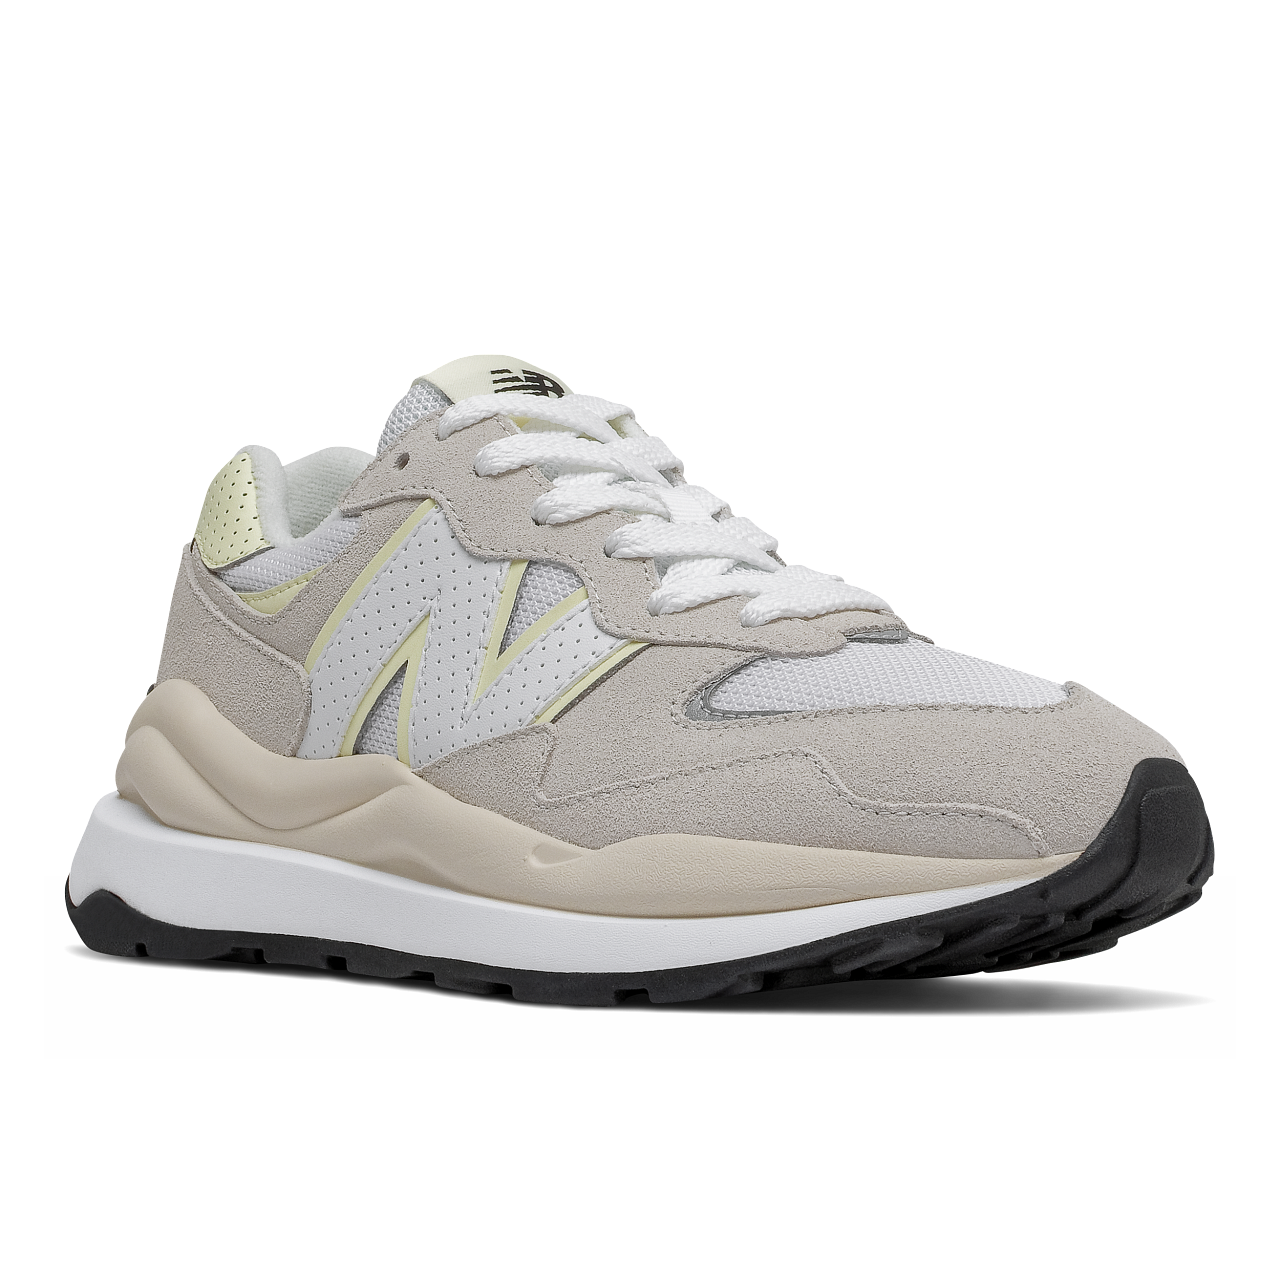 New Balance 57/40 Sneakers, Harvest Gold, 37.5